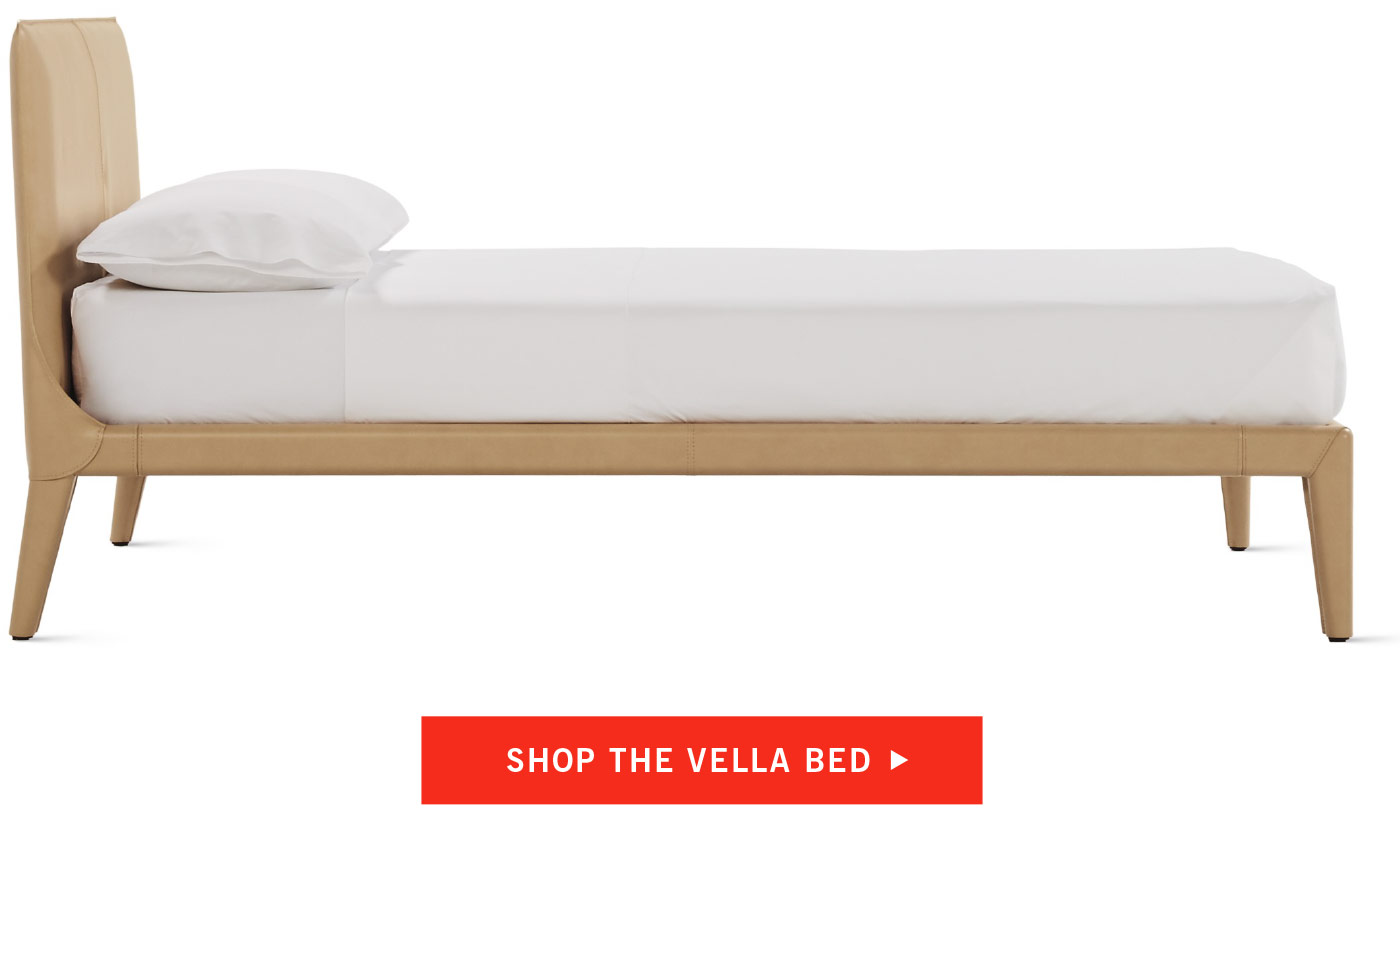 Shop Vella Bed